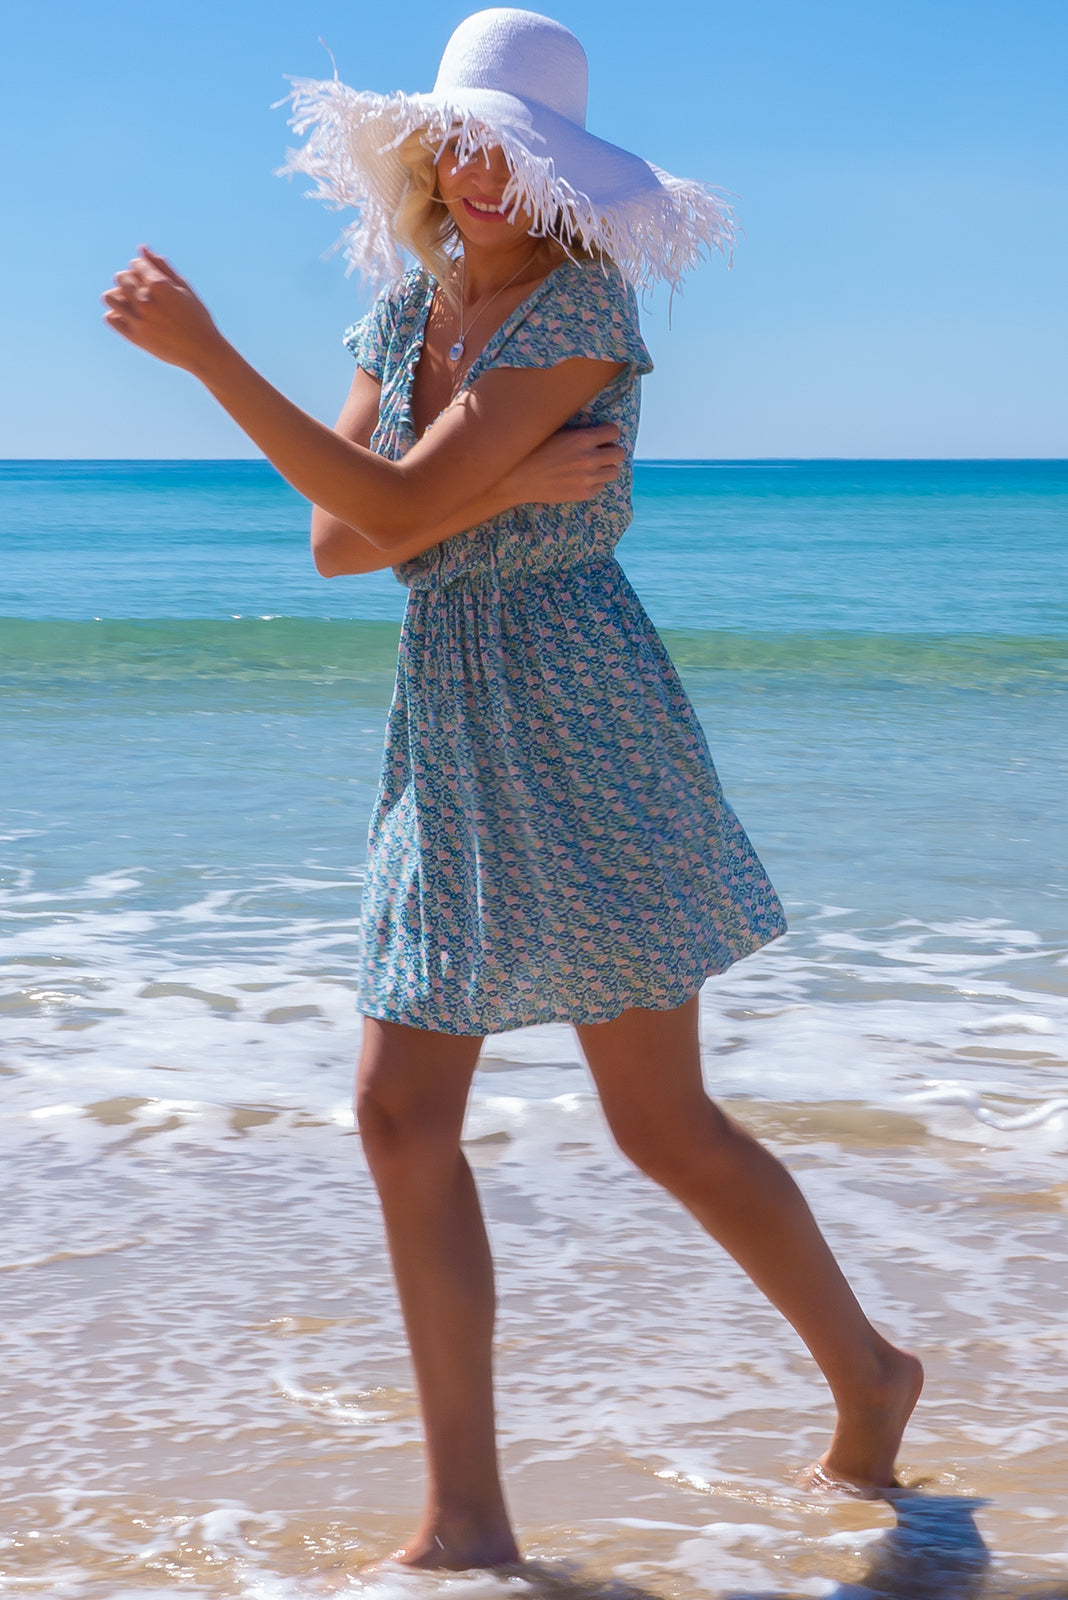 The Piccadilly Blue Dress features adjustable neckline with ties, cap sleeves, easticated waist, side pockets and 100% rayon in blue, pink, green and white print.